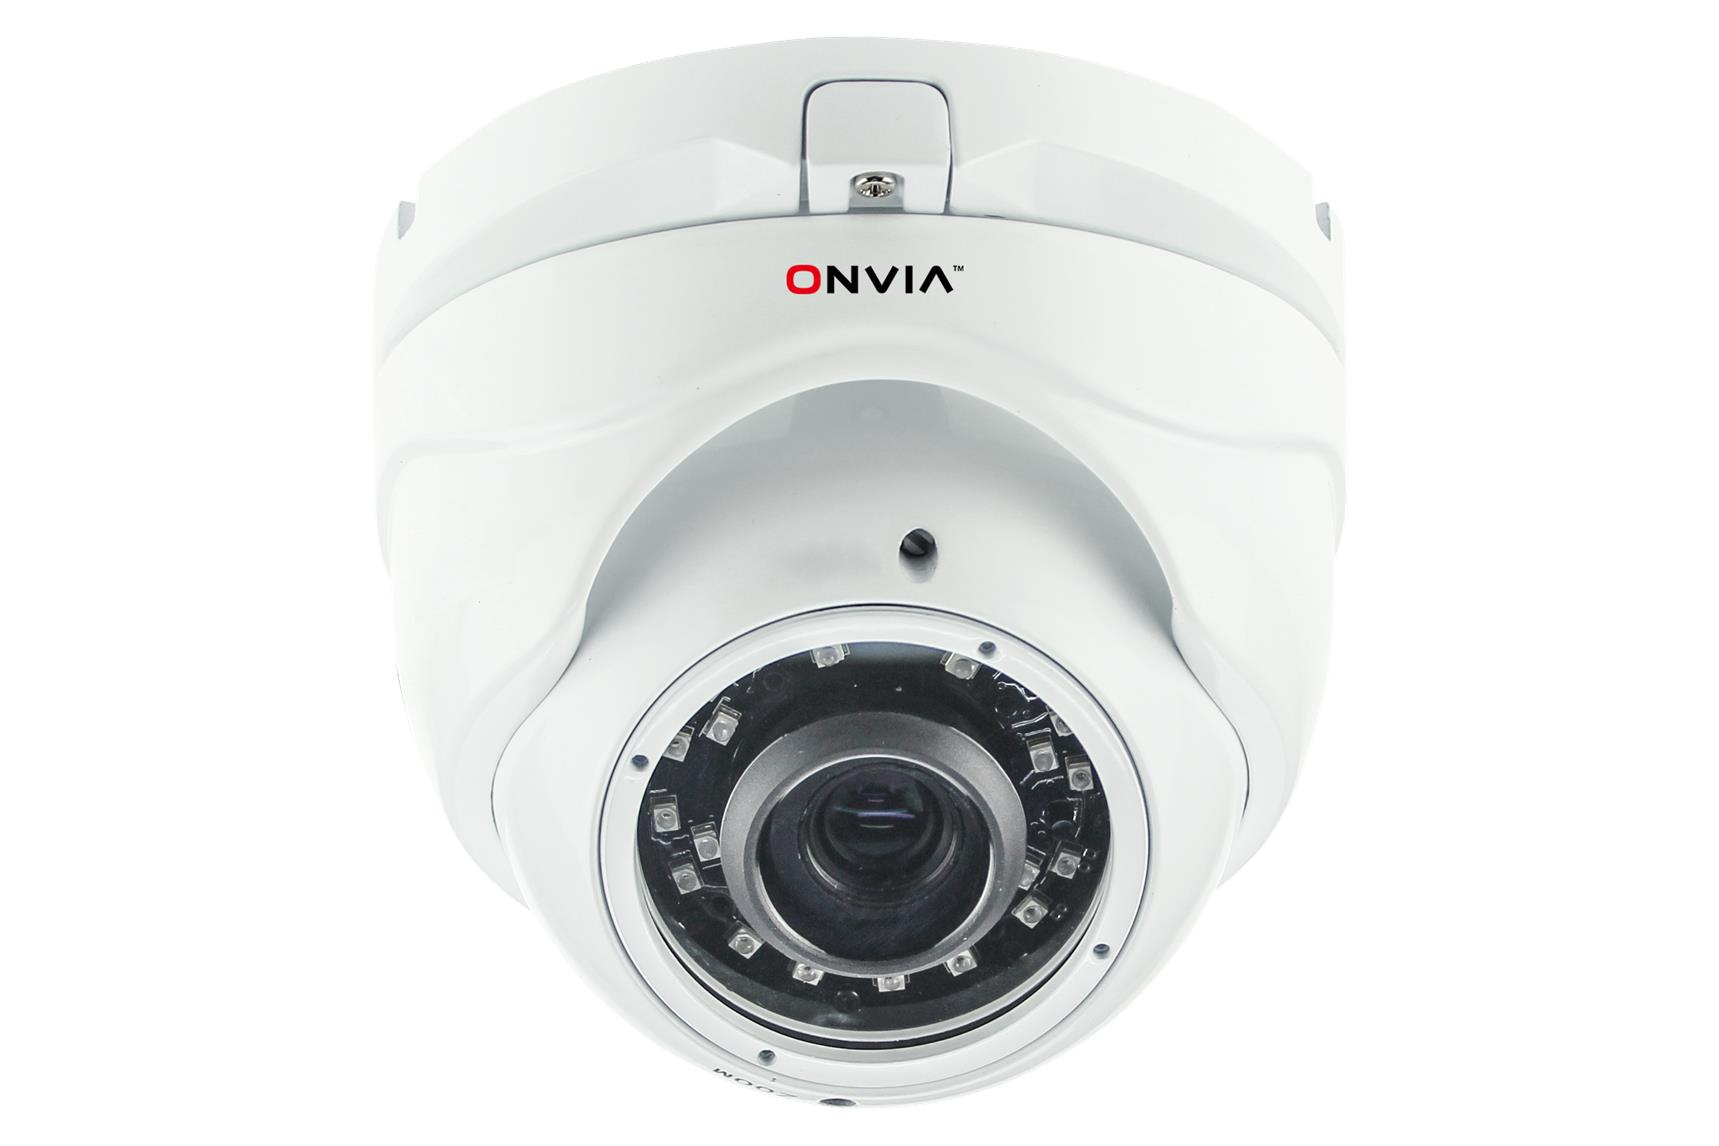 Onvia 2.4 MP HD-AHD Camera A240i PLUS (Indoor)